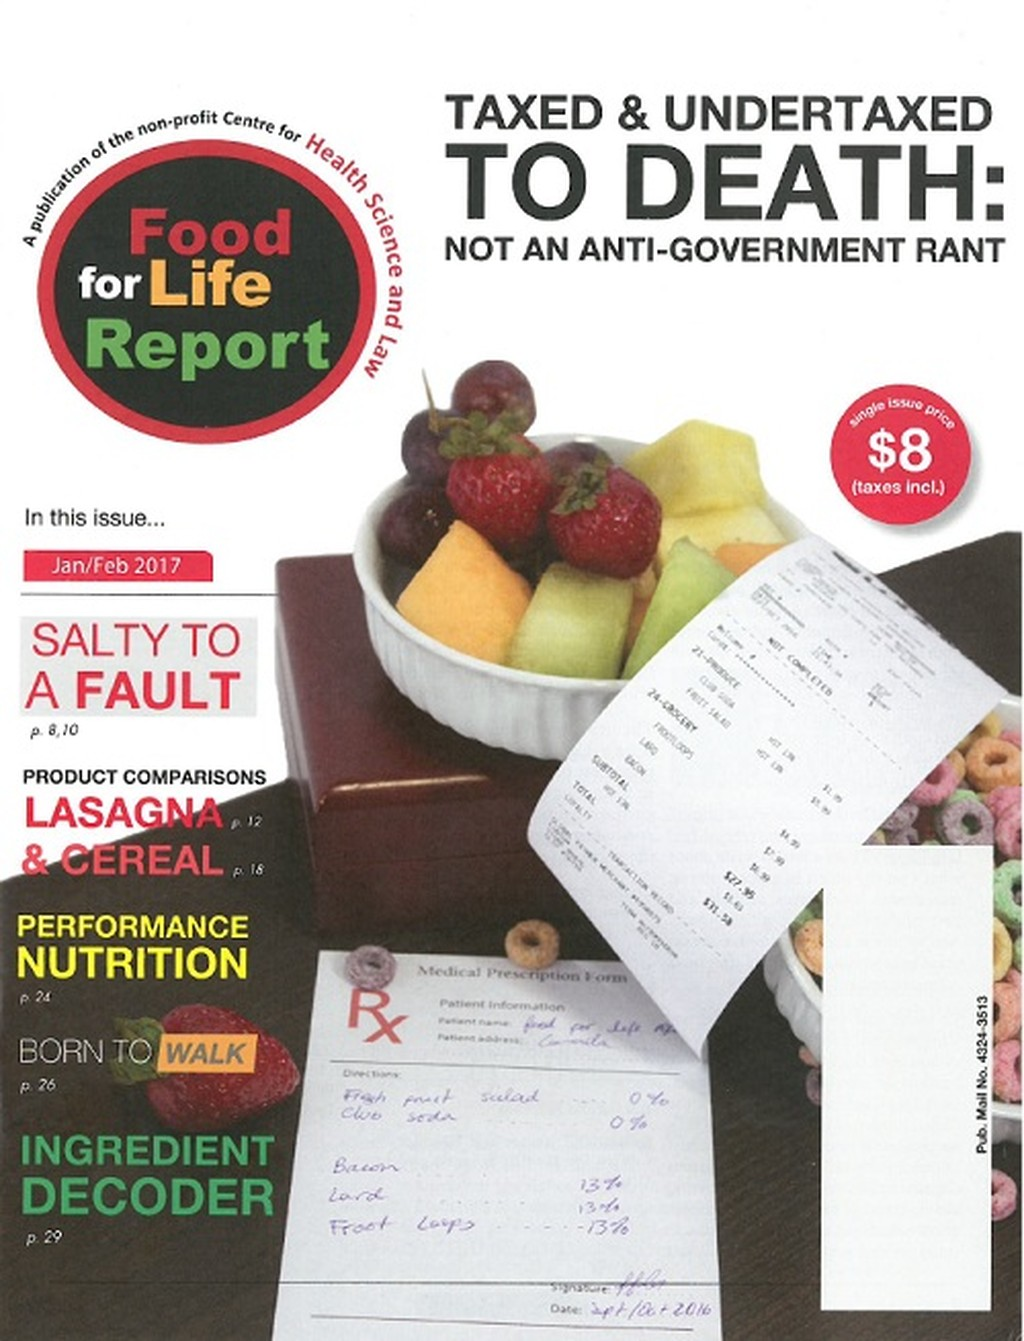 Food for Life Report magazine cover